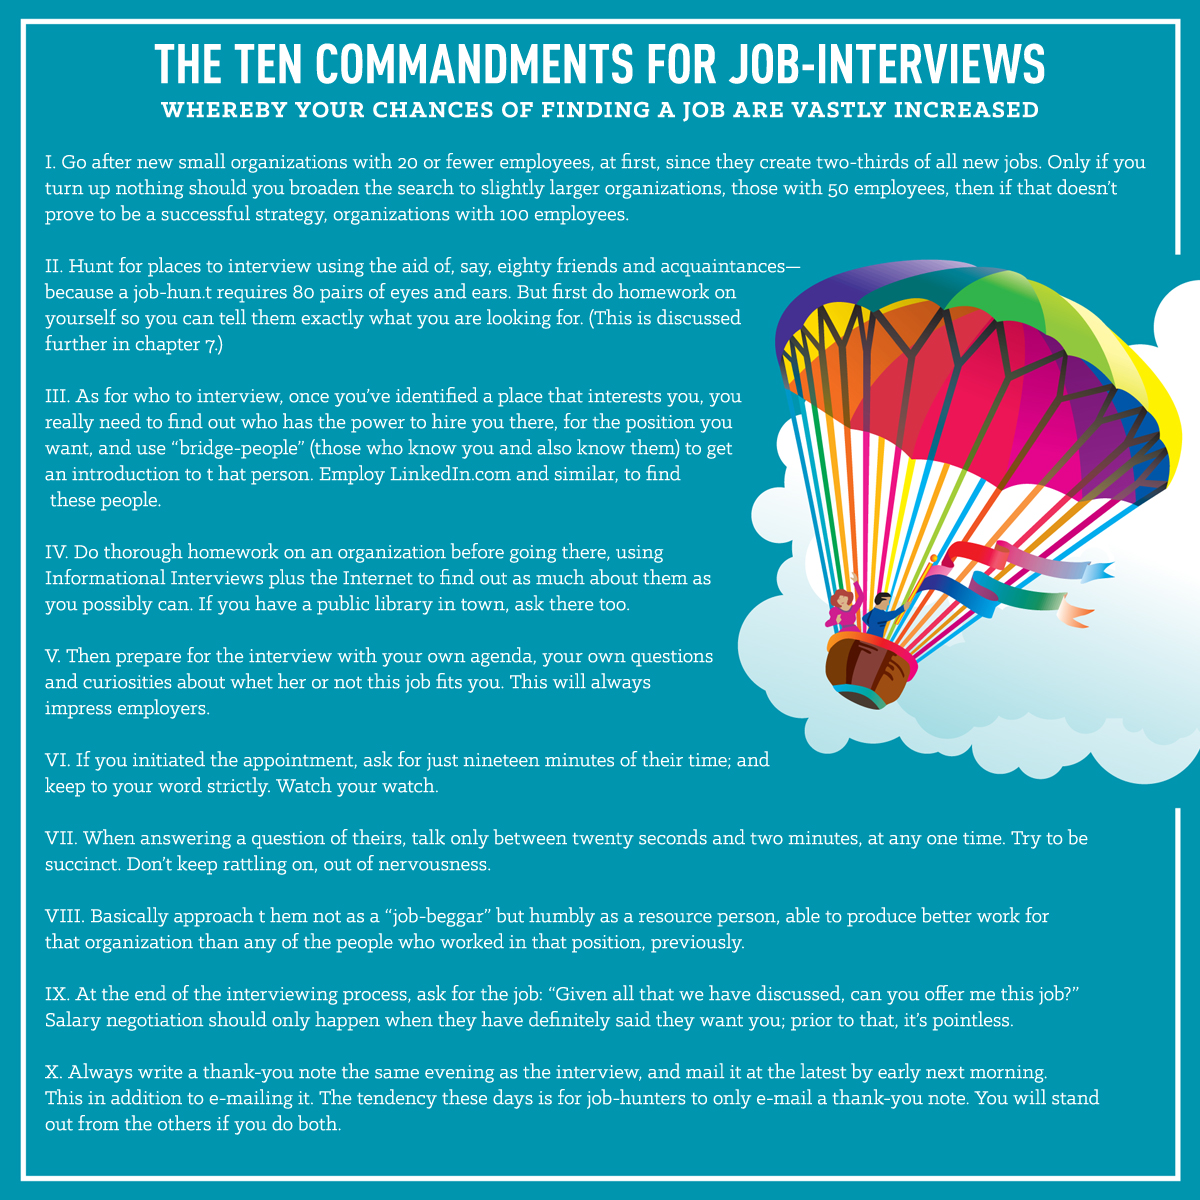 Interviewing Tips From What Color Is Your Parachute